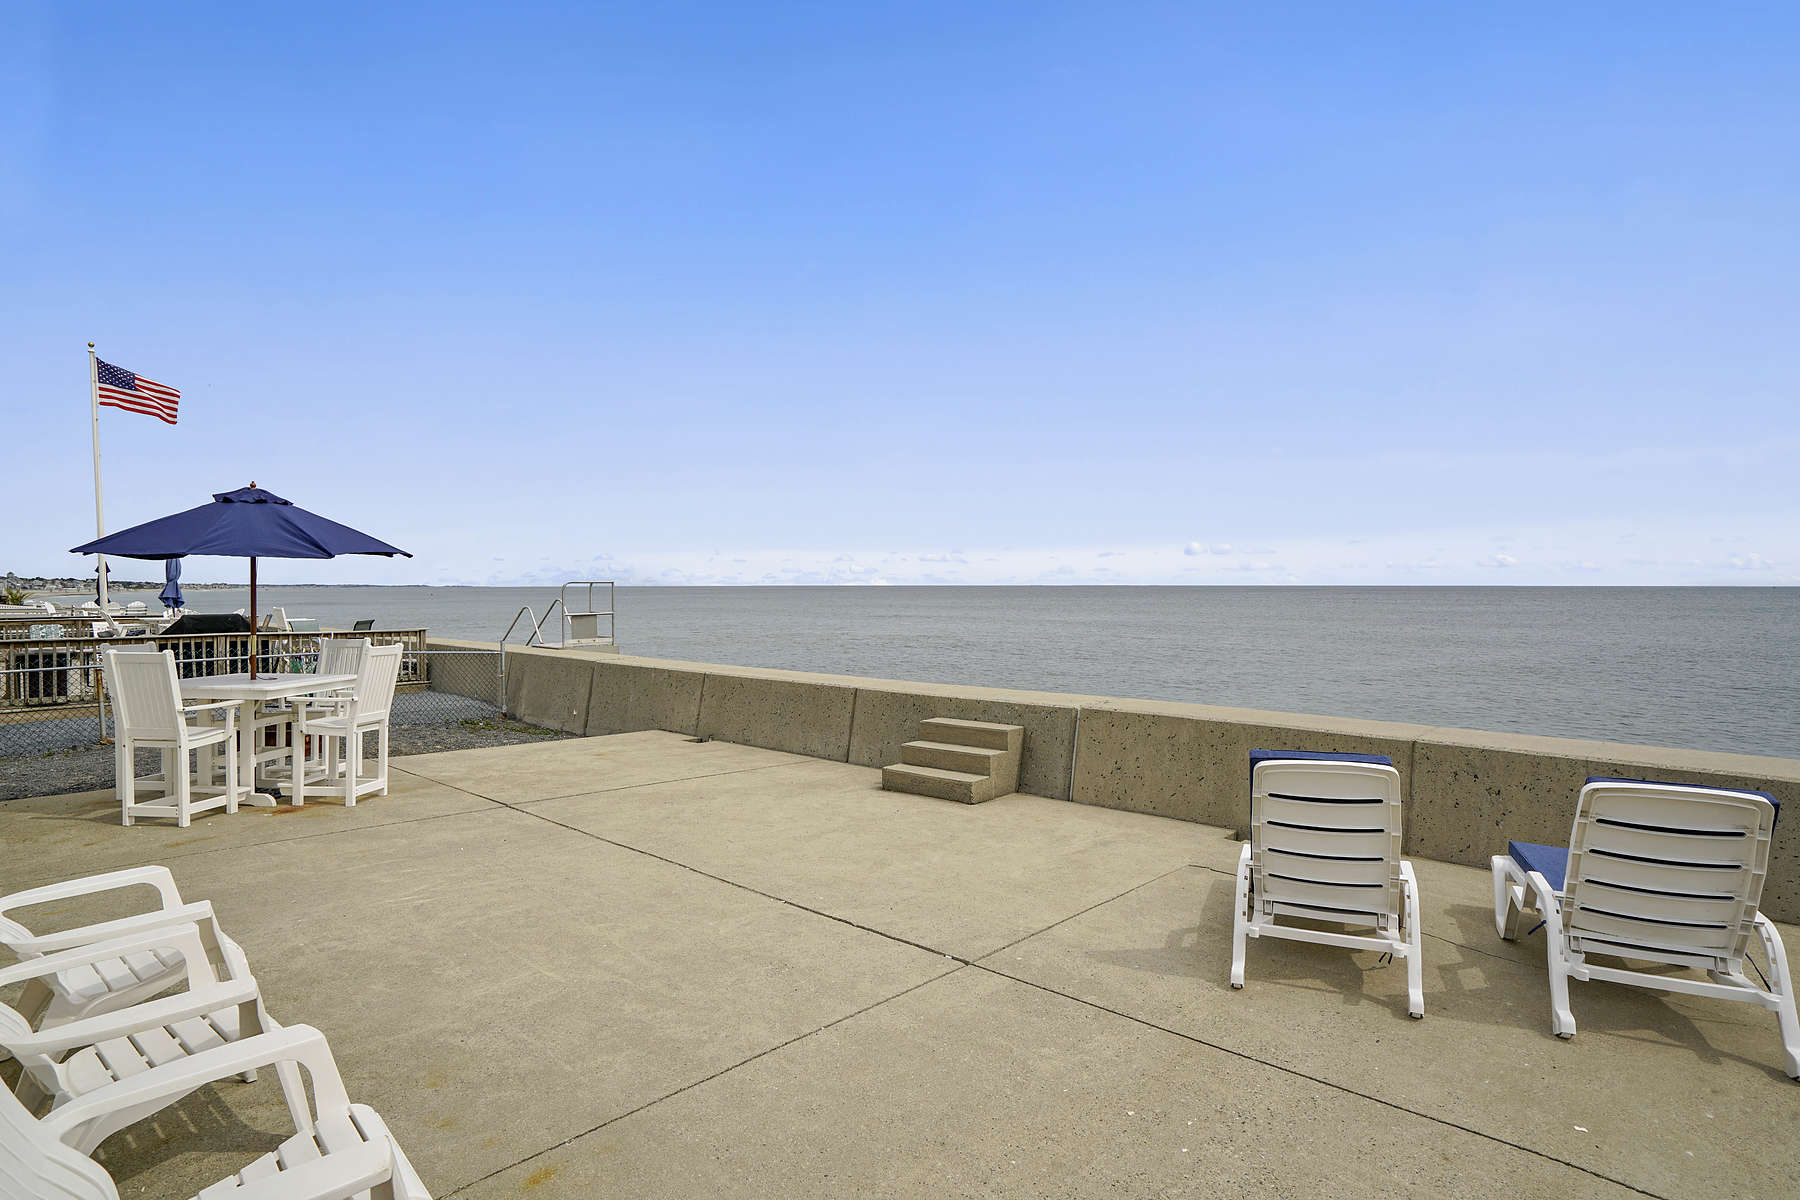 Single Family Home for Active at Oceanfront Home 56 Foster Ave Marshfield, Massachusetts 02050 United States